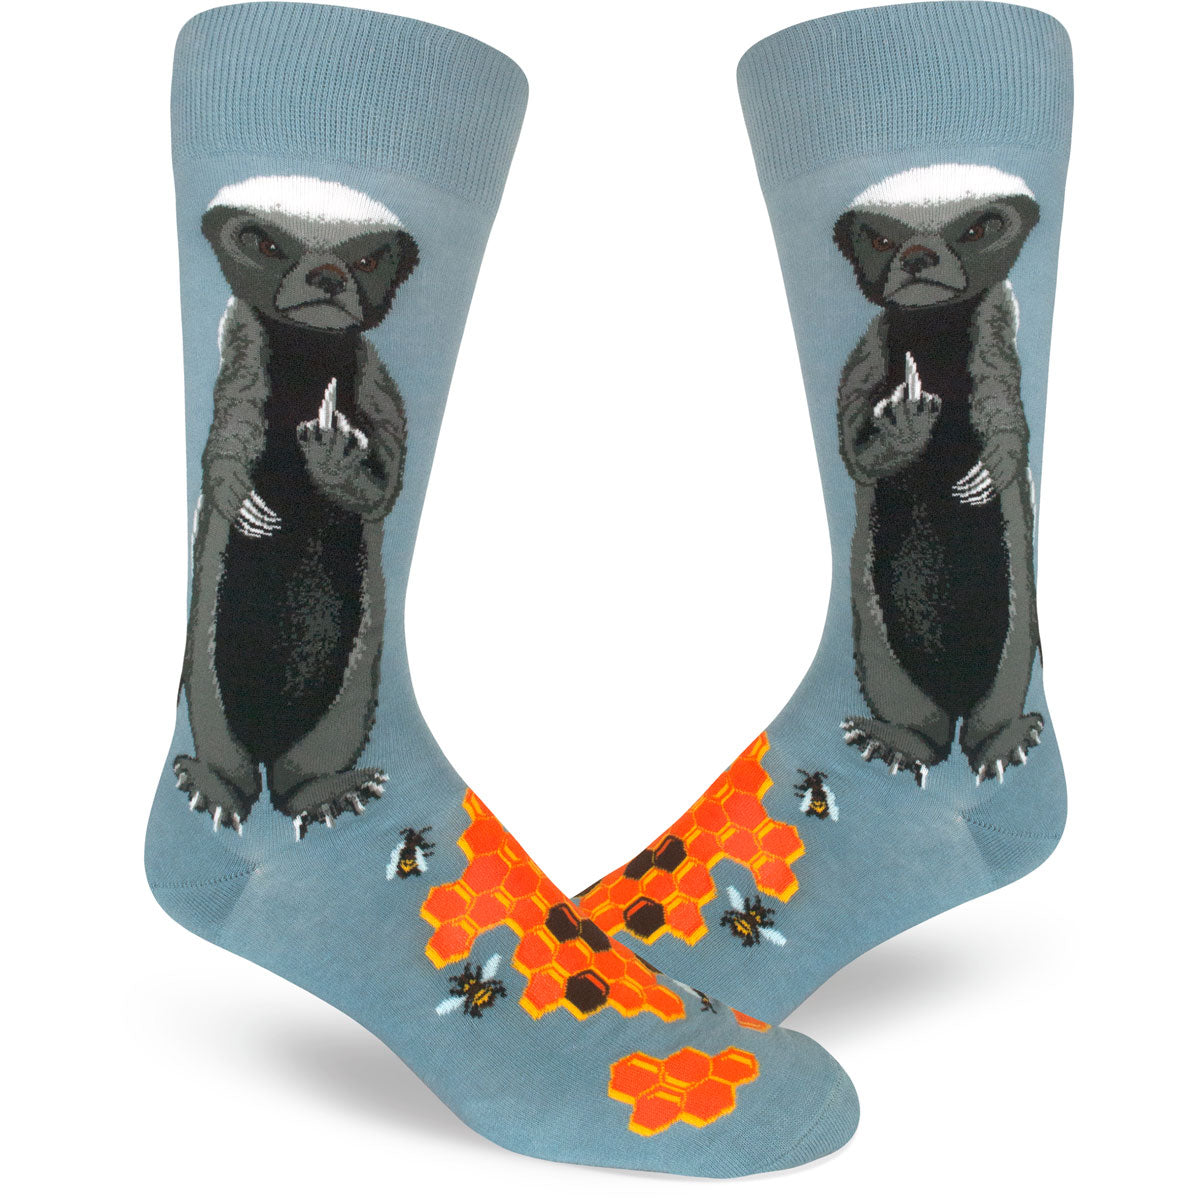 Funny men's socks with a honey badger flipping the middle finger